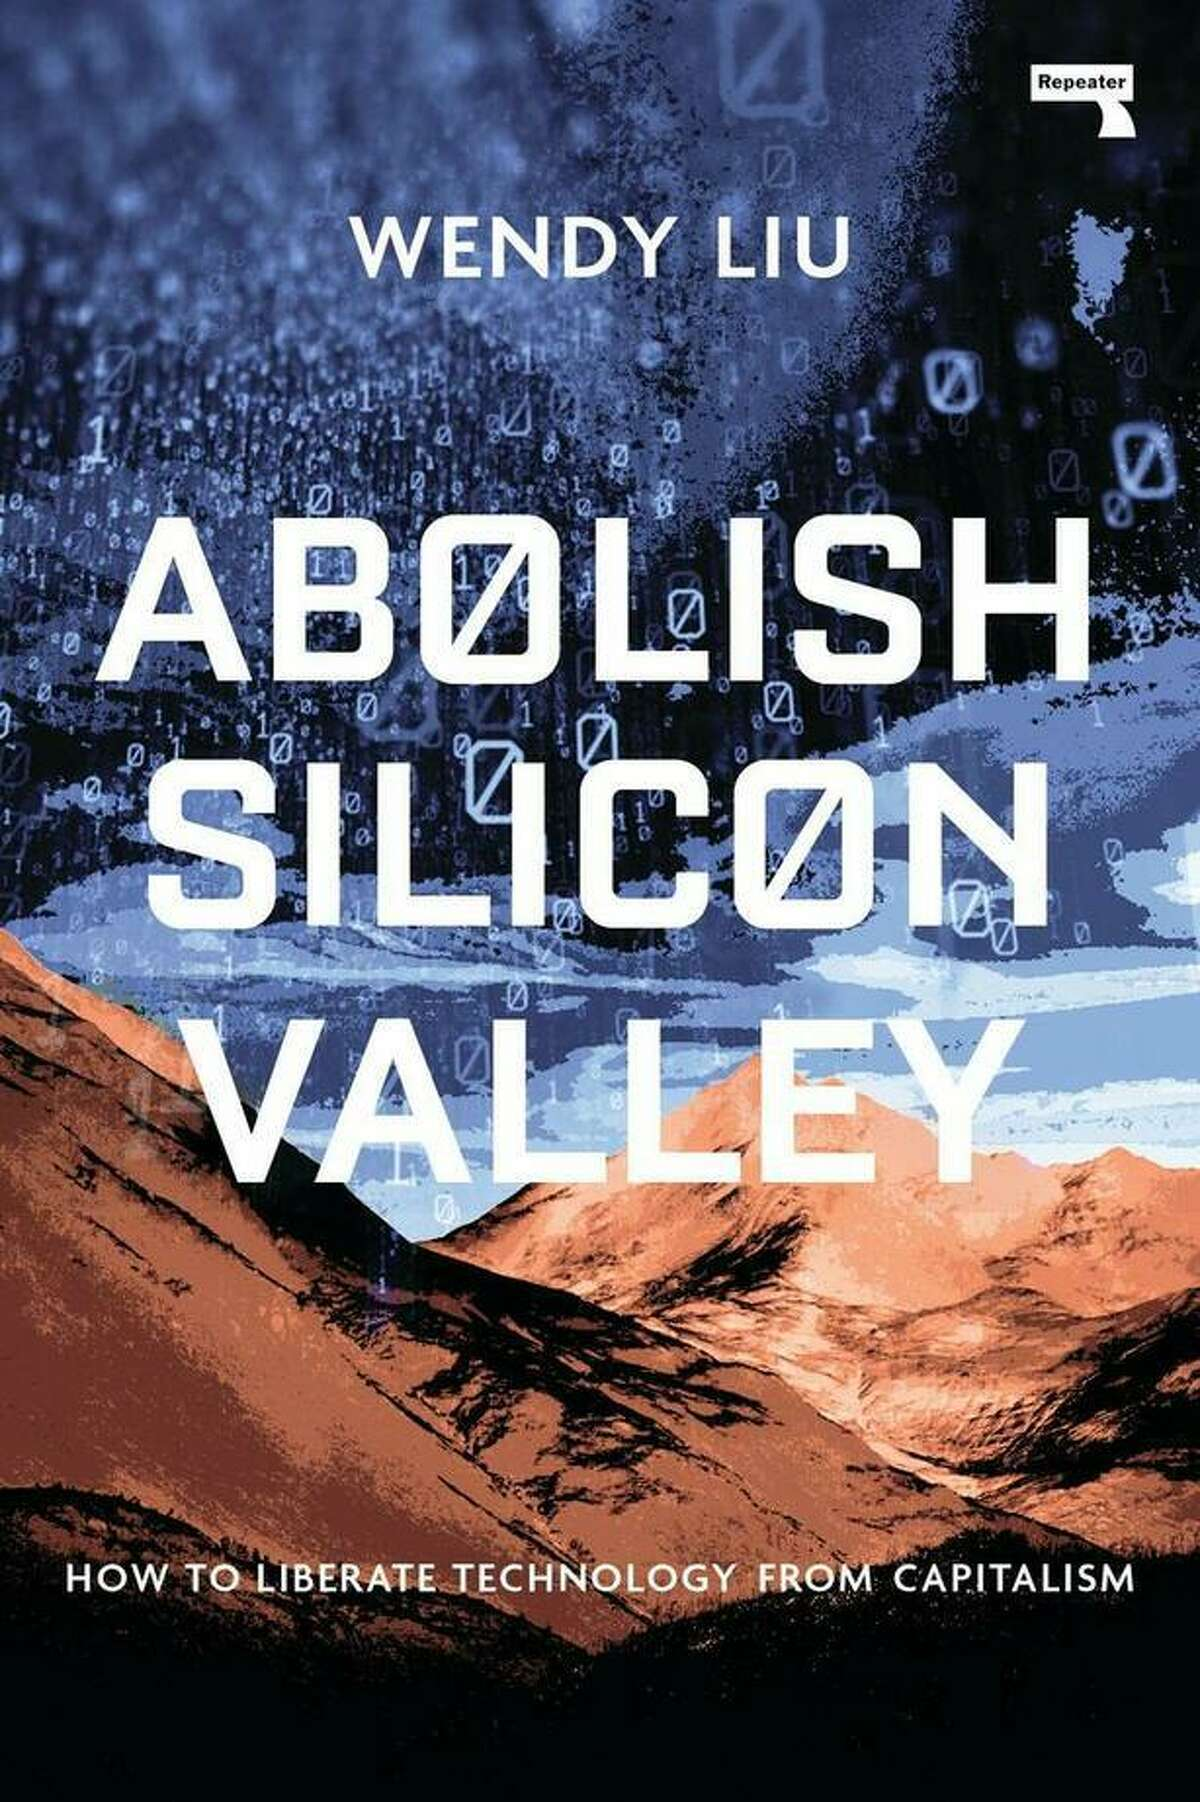 A new book from a former tech worker questions Silicon Valley's embrace of capitalism.